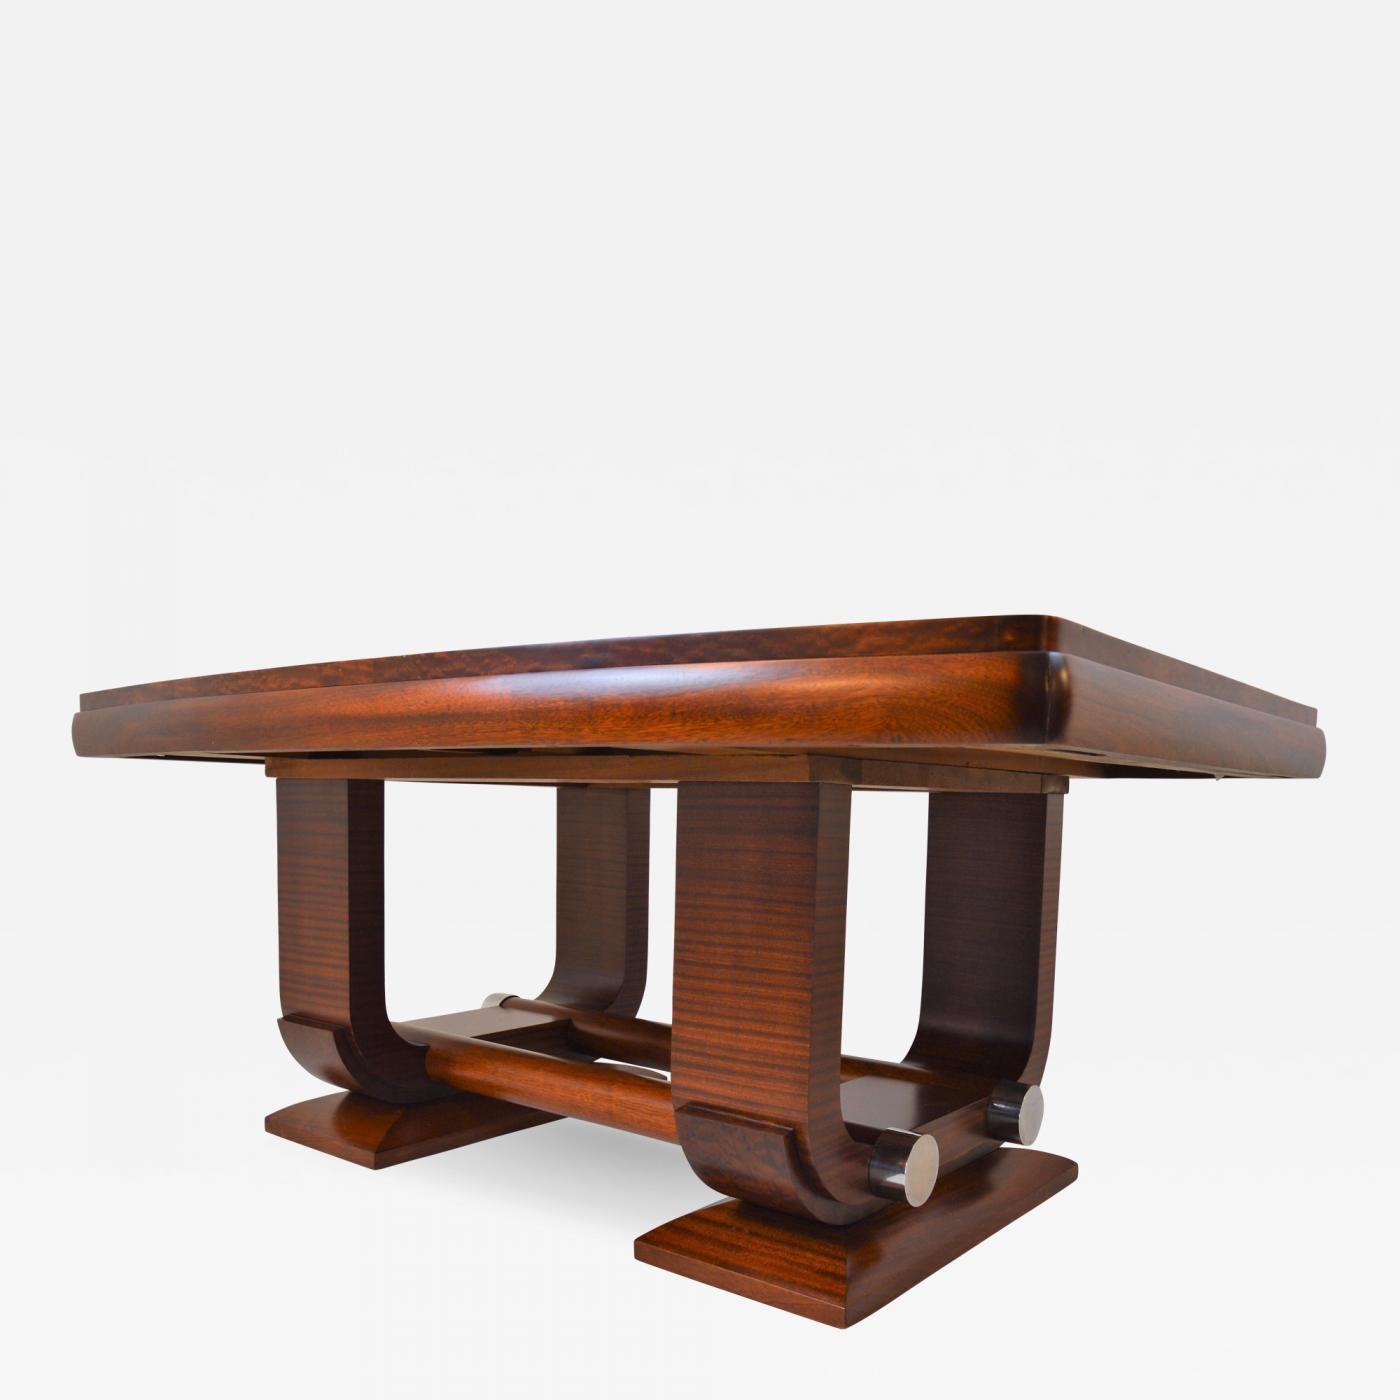 Gaston Poisson - Fabulous Gaston Poisson Art Deco Dining Room Table in  Mahogany, 1930